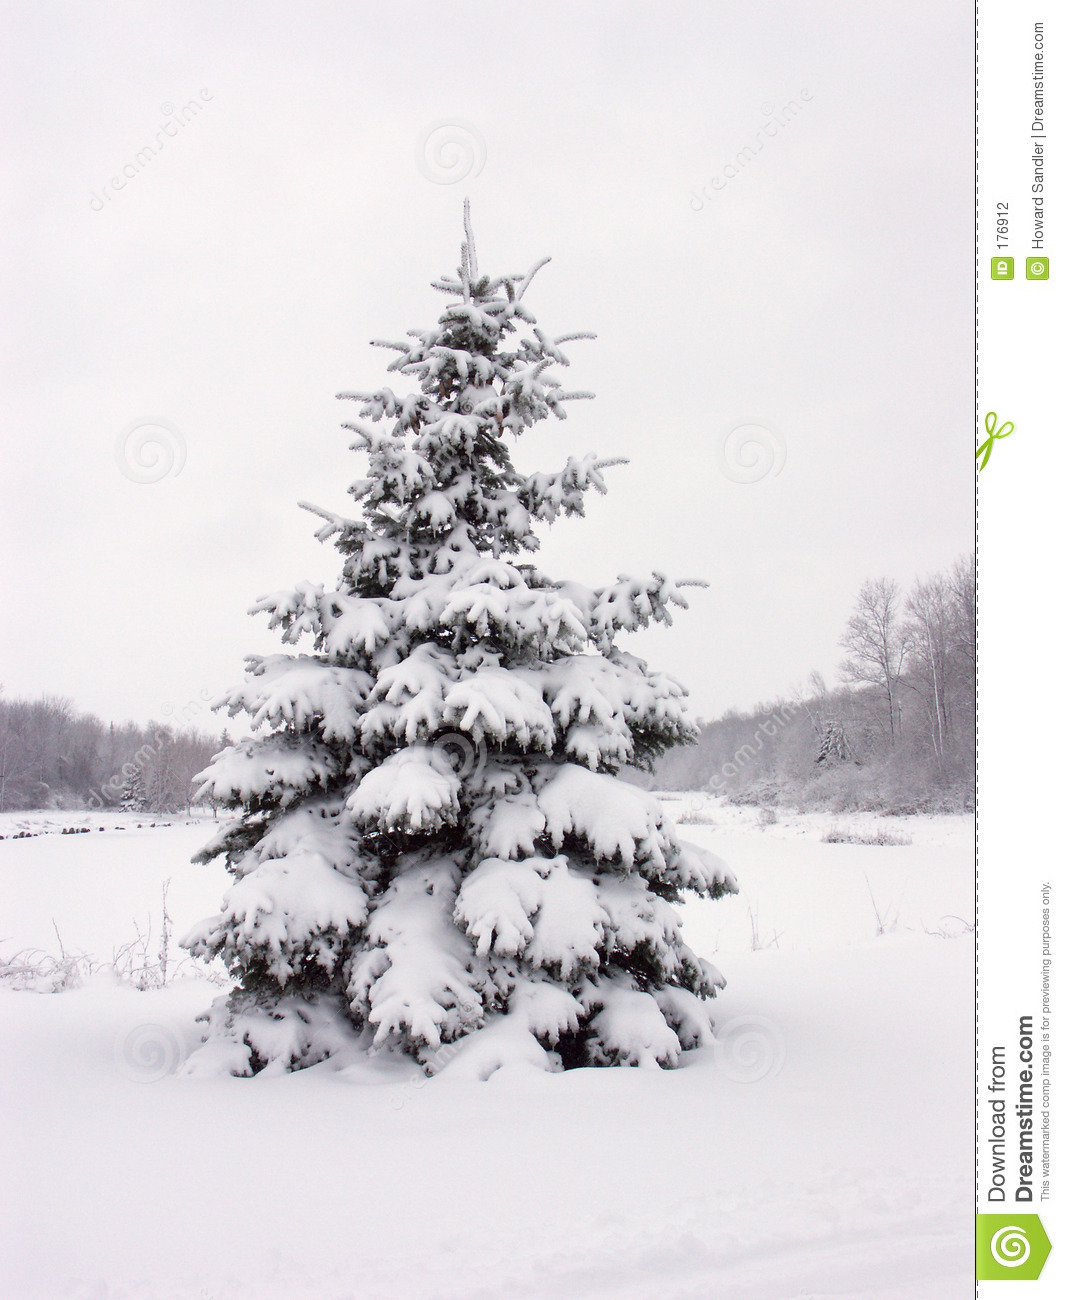 snowy pine tree stock photo image of isolated bough lone 176912